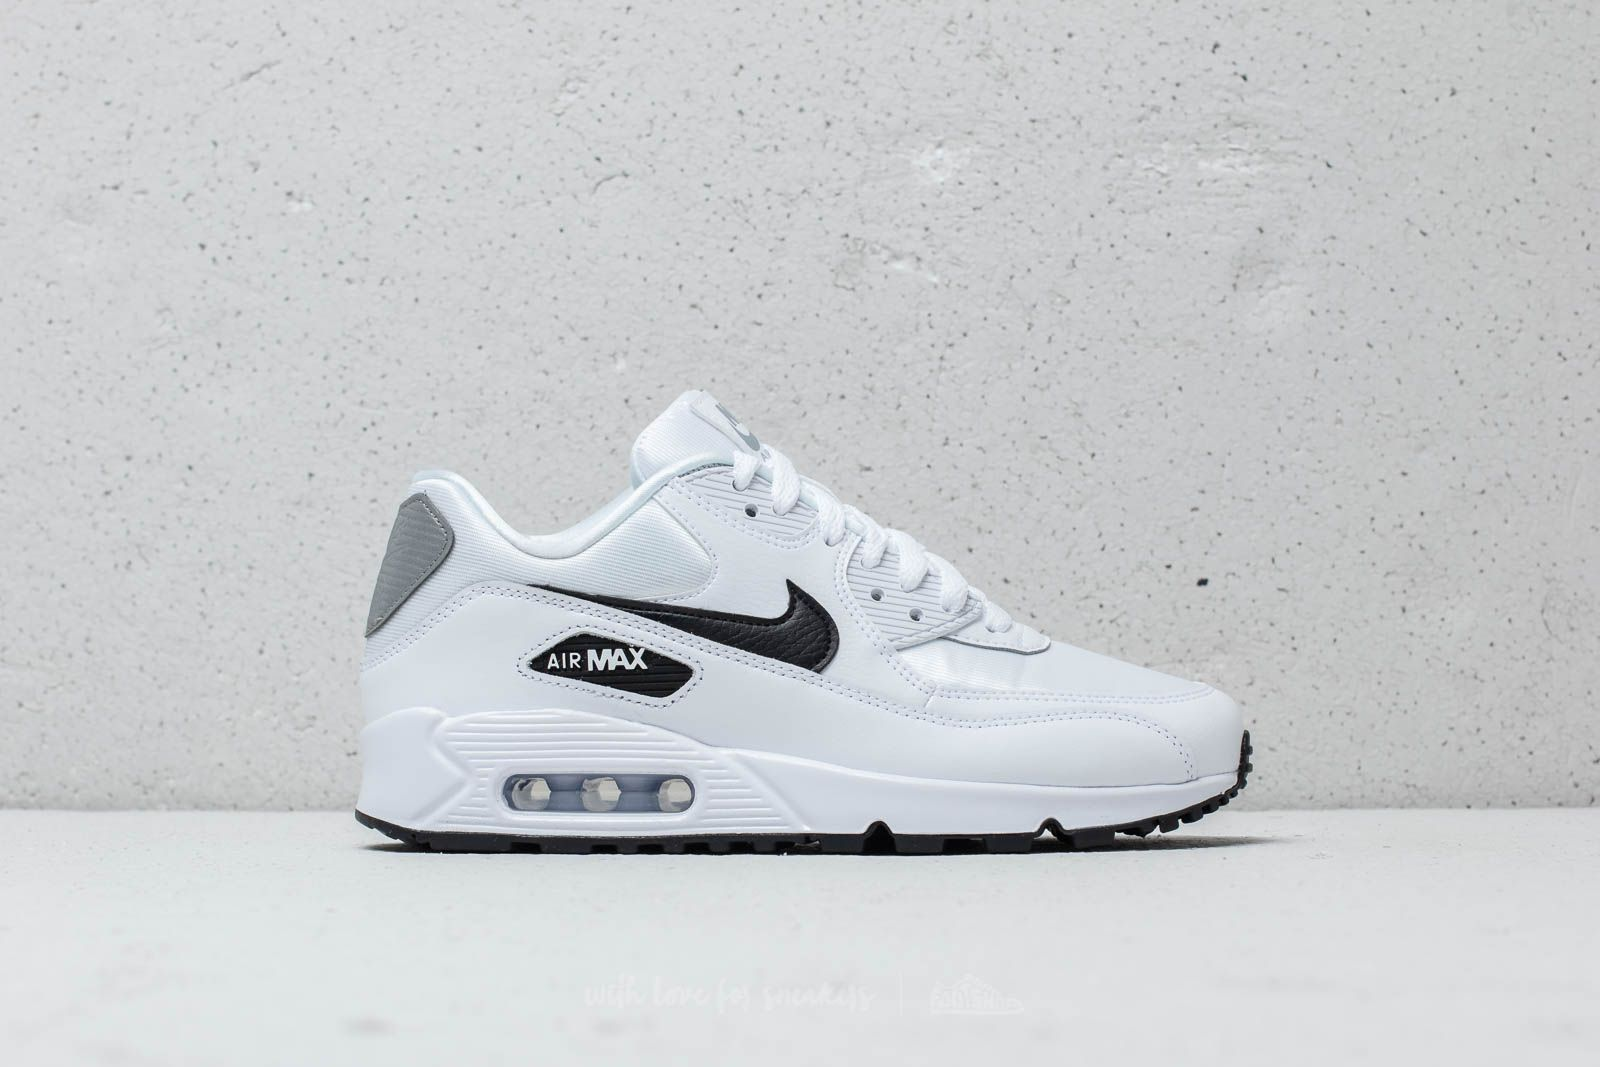 huge discount e1141 41e6d Nike Wmns Air Max 90 White Black-Reflect Silver at a great price 139